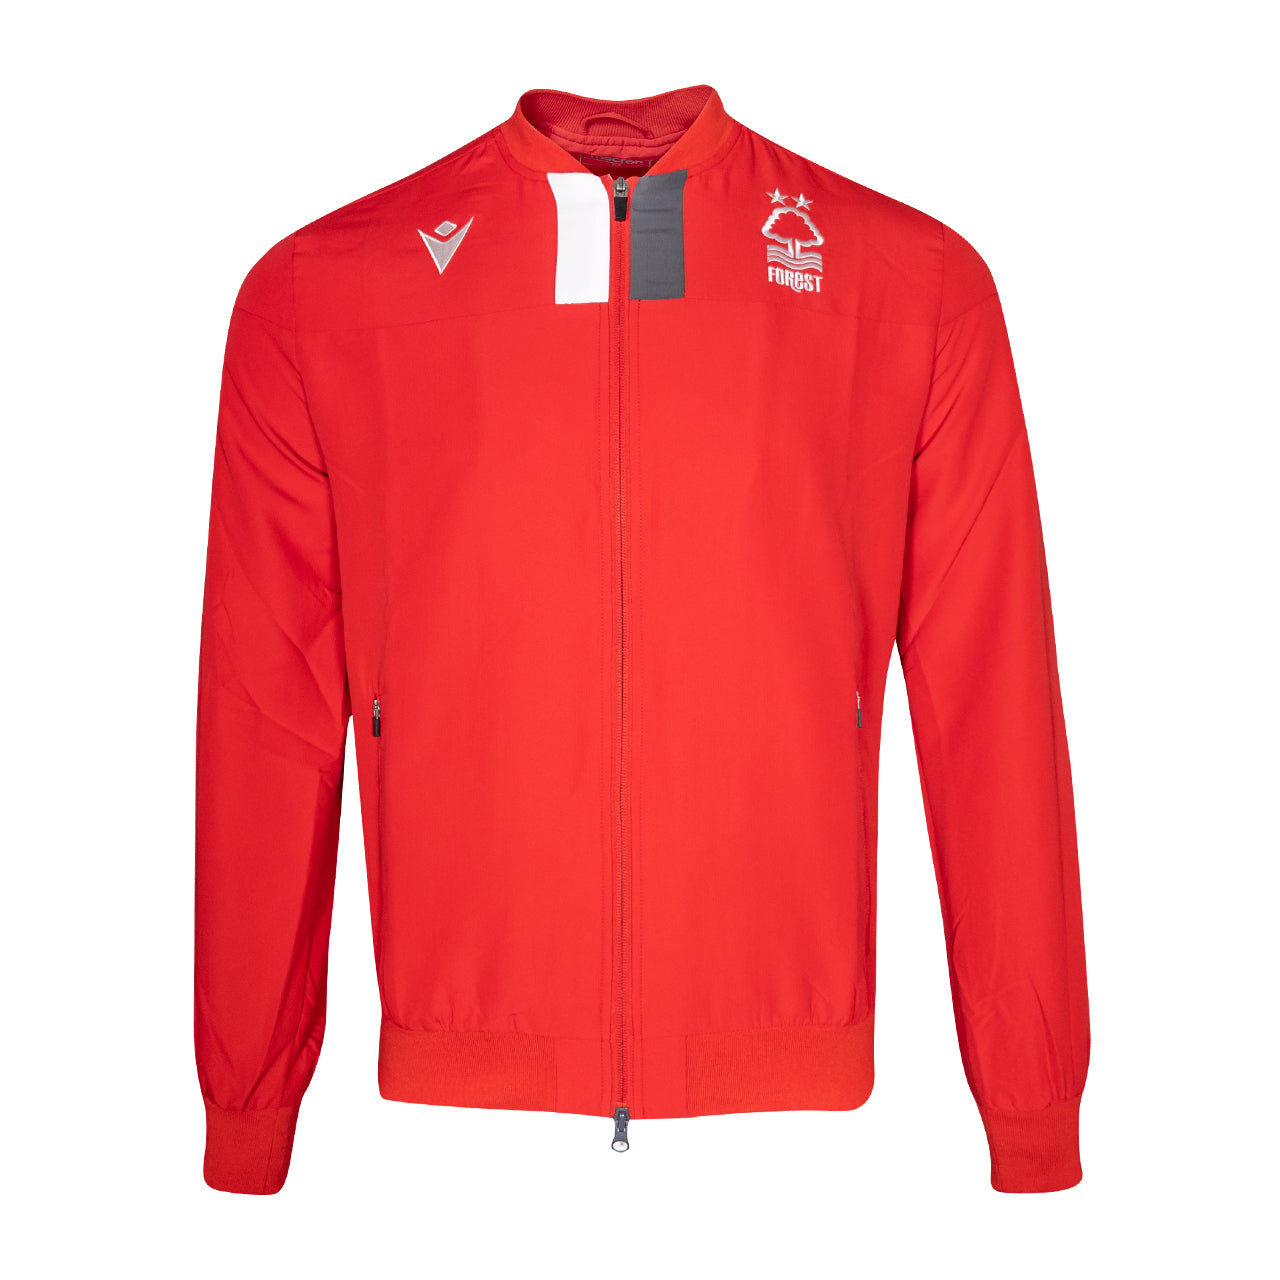 NFFC Junior Red Player Full Zip Training Top 19/20